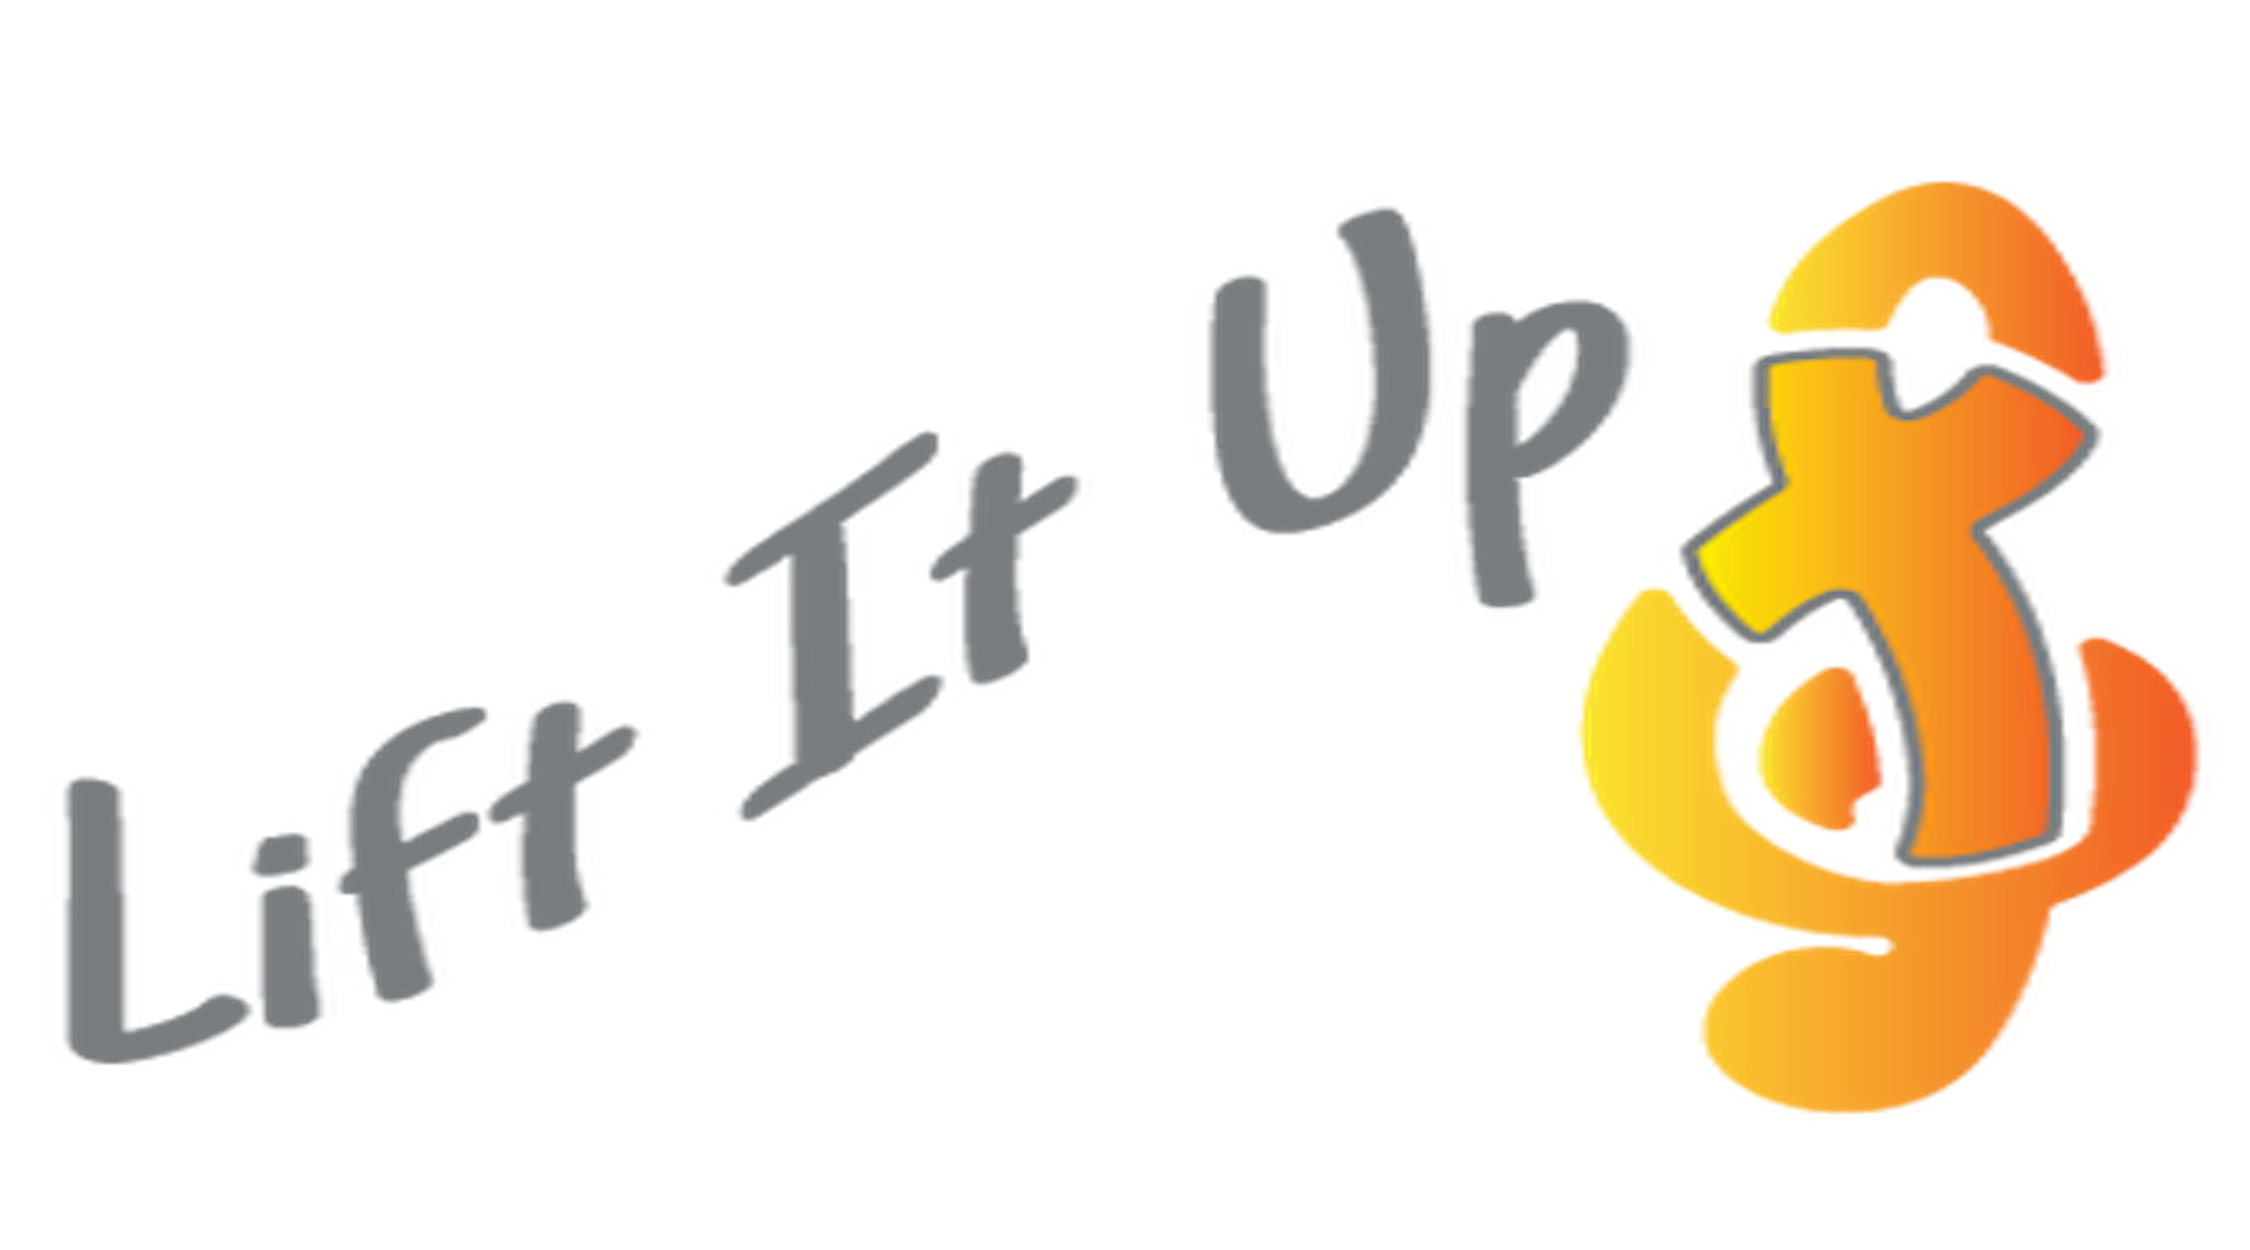 lift-it-up-logo-color-digital.png